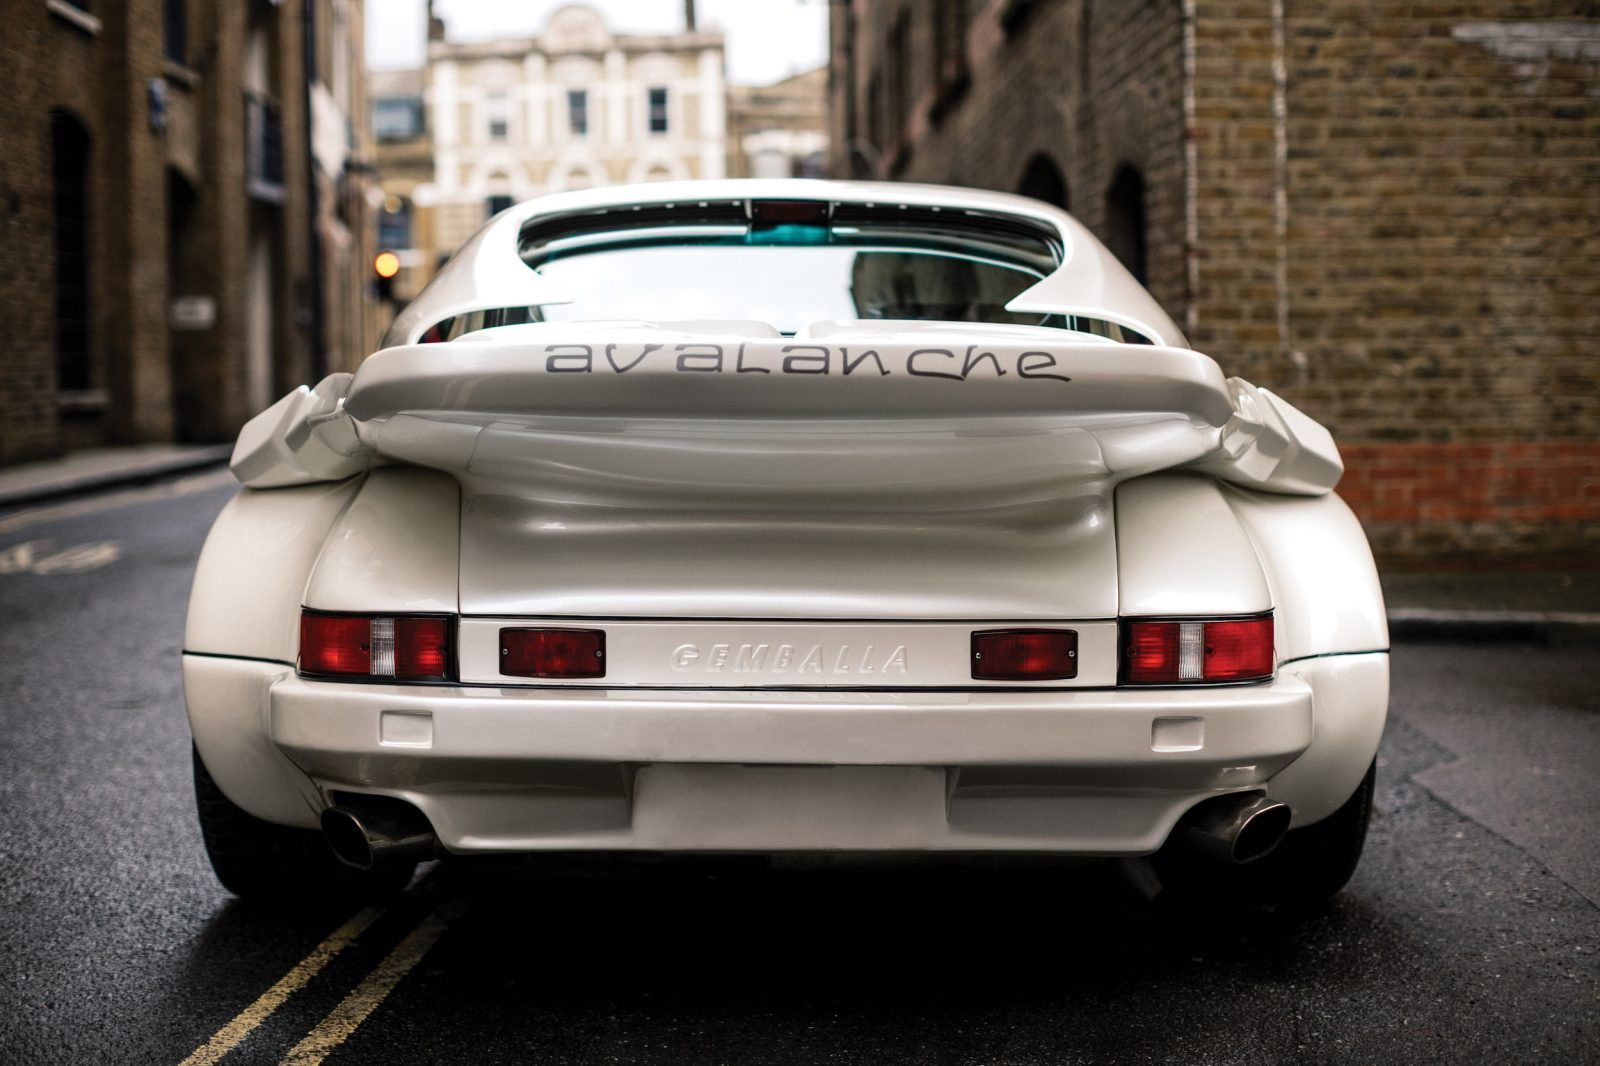 1986 Gemballa Avalanche Porsche Porsche For Sale Bespoke Cars